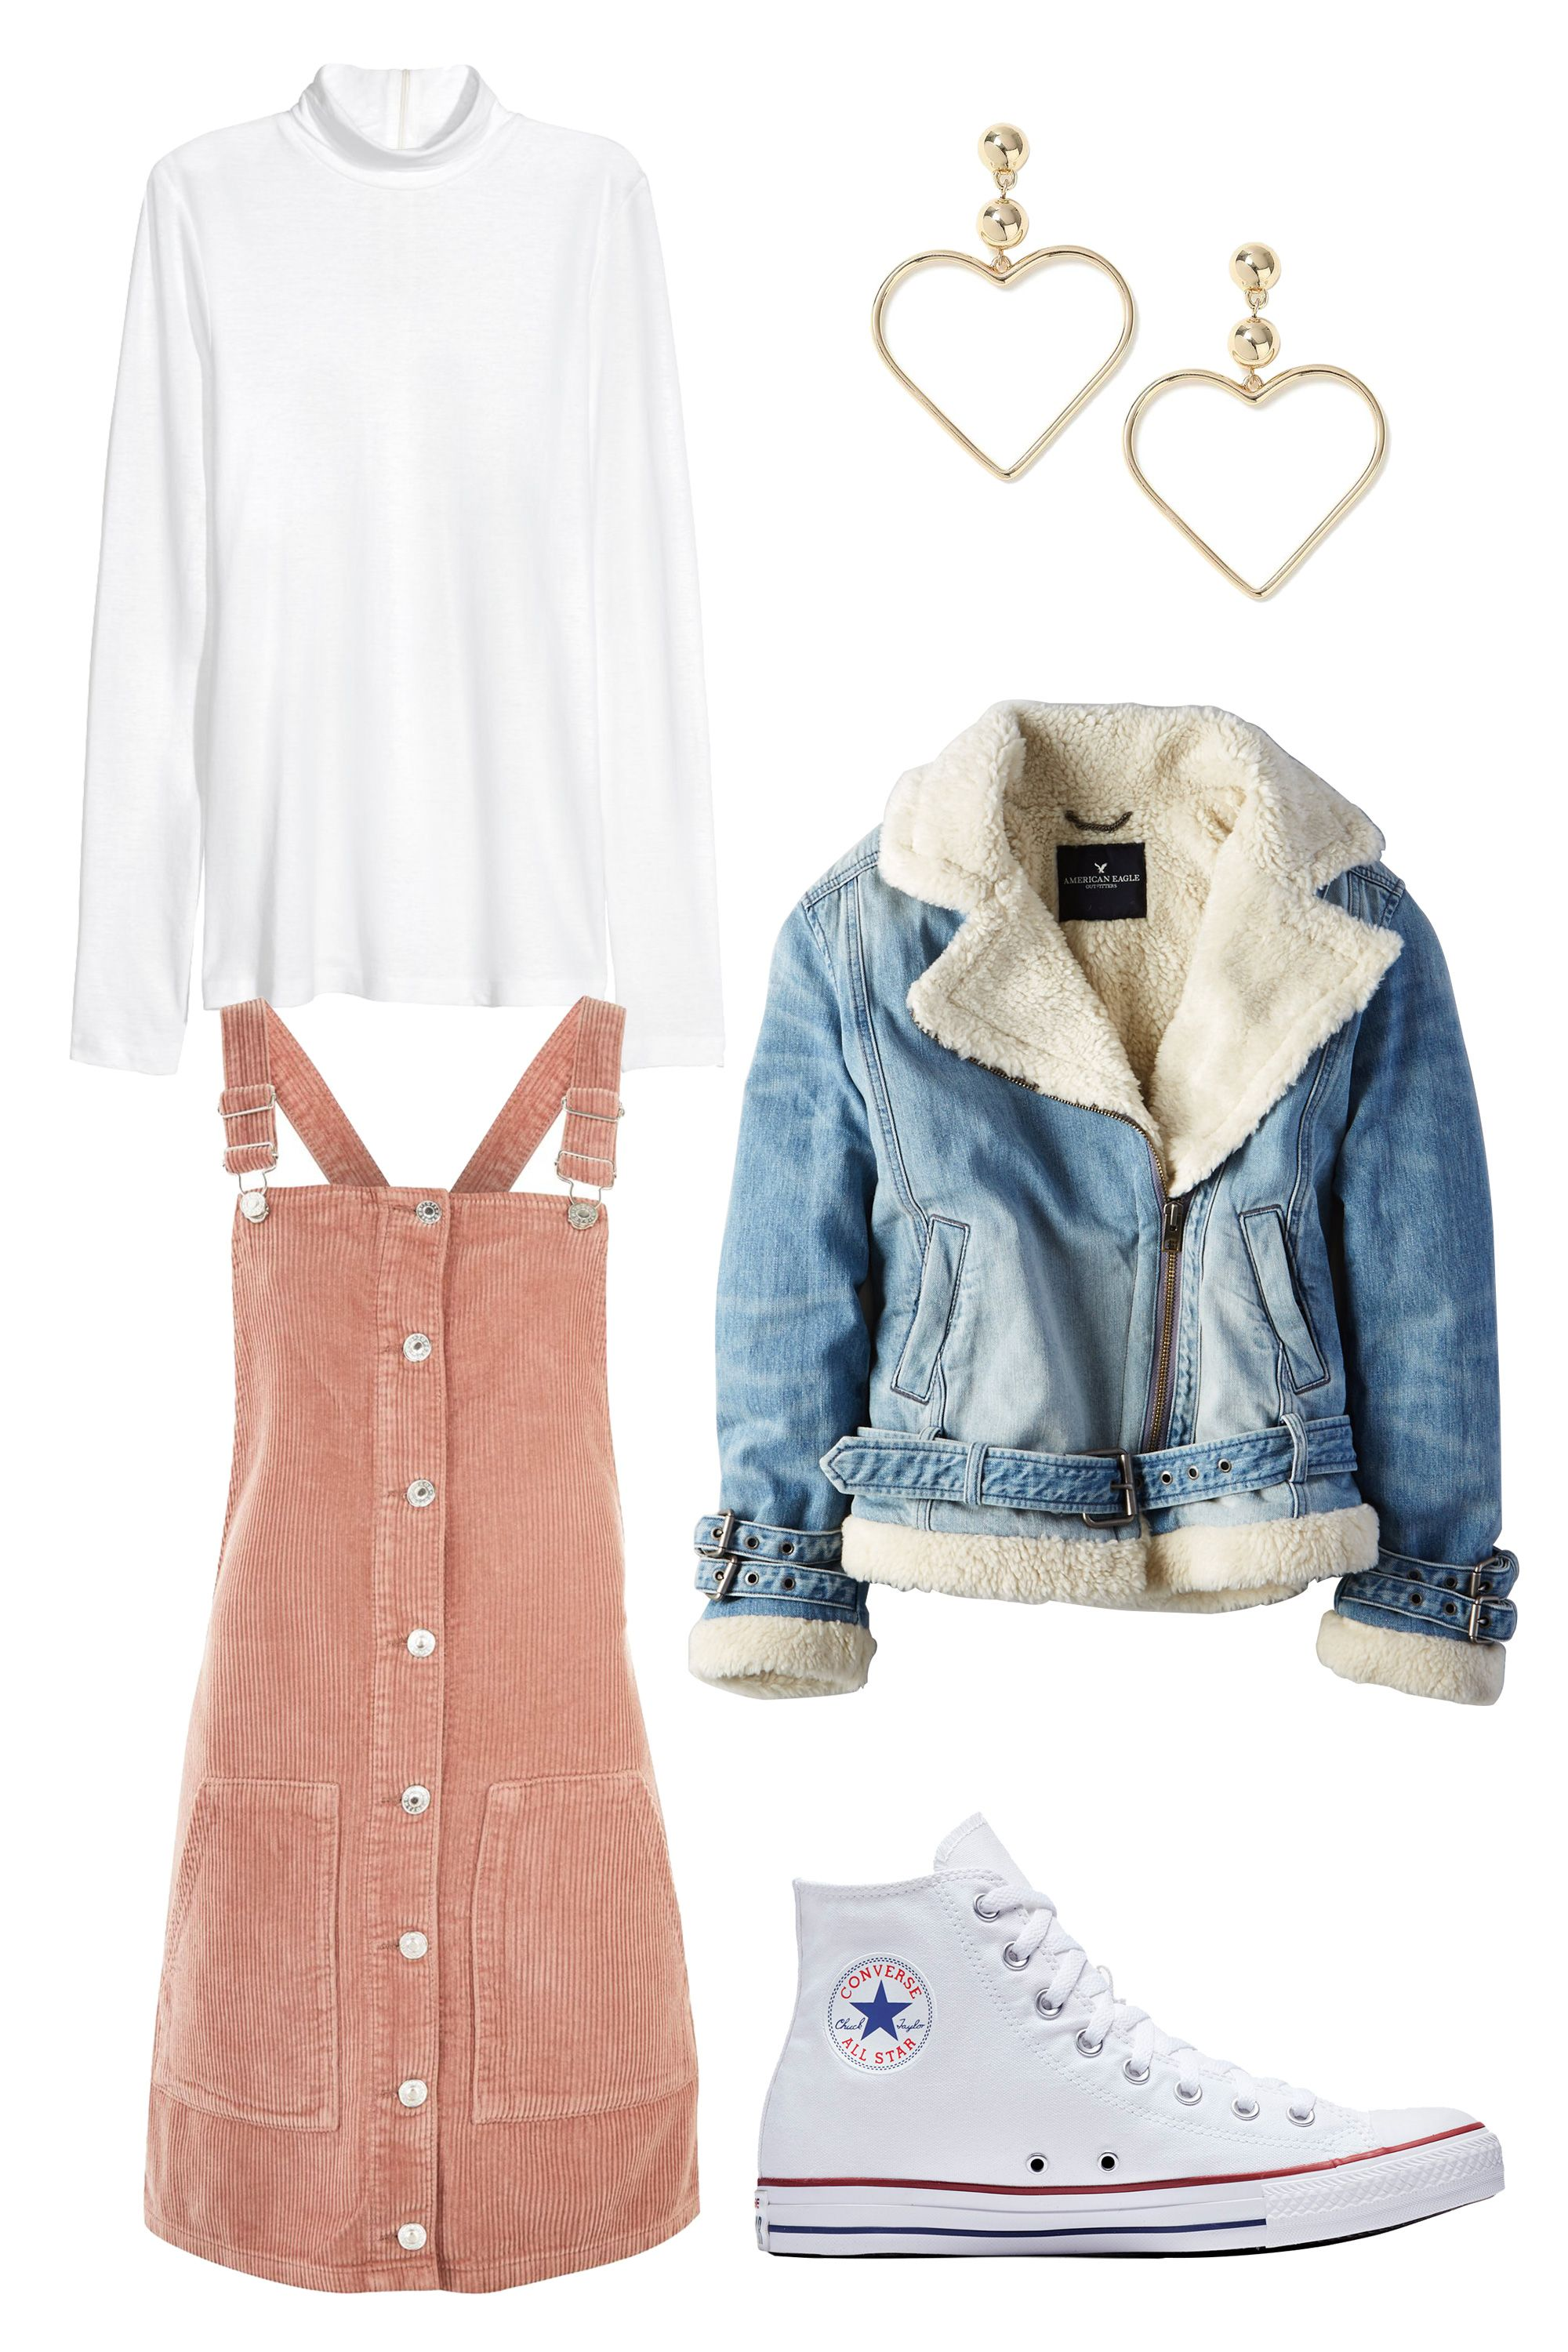 Converse Spring Style - How to Wear Sneakers for Spring